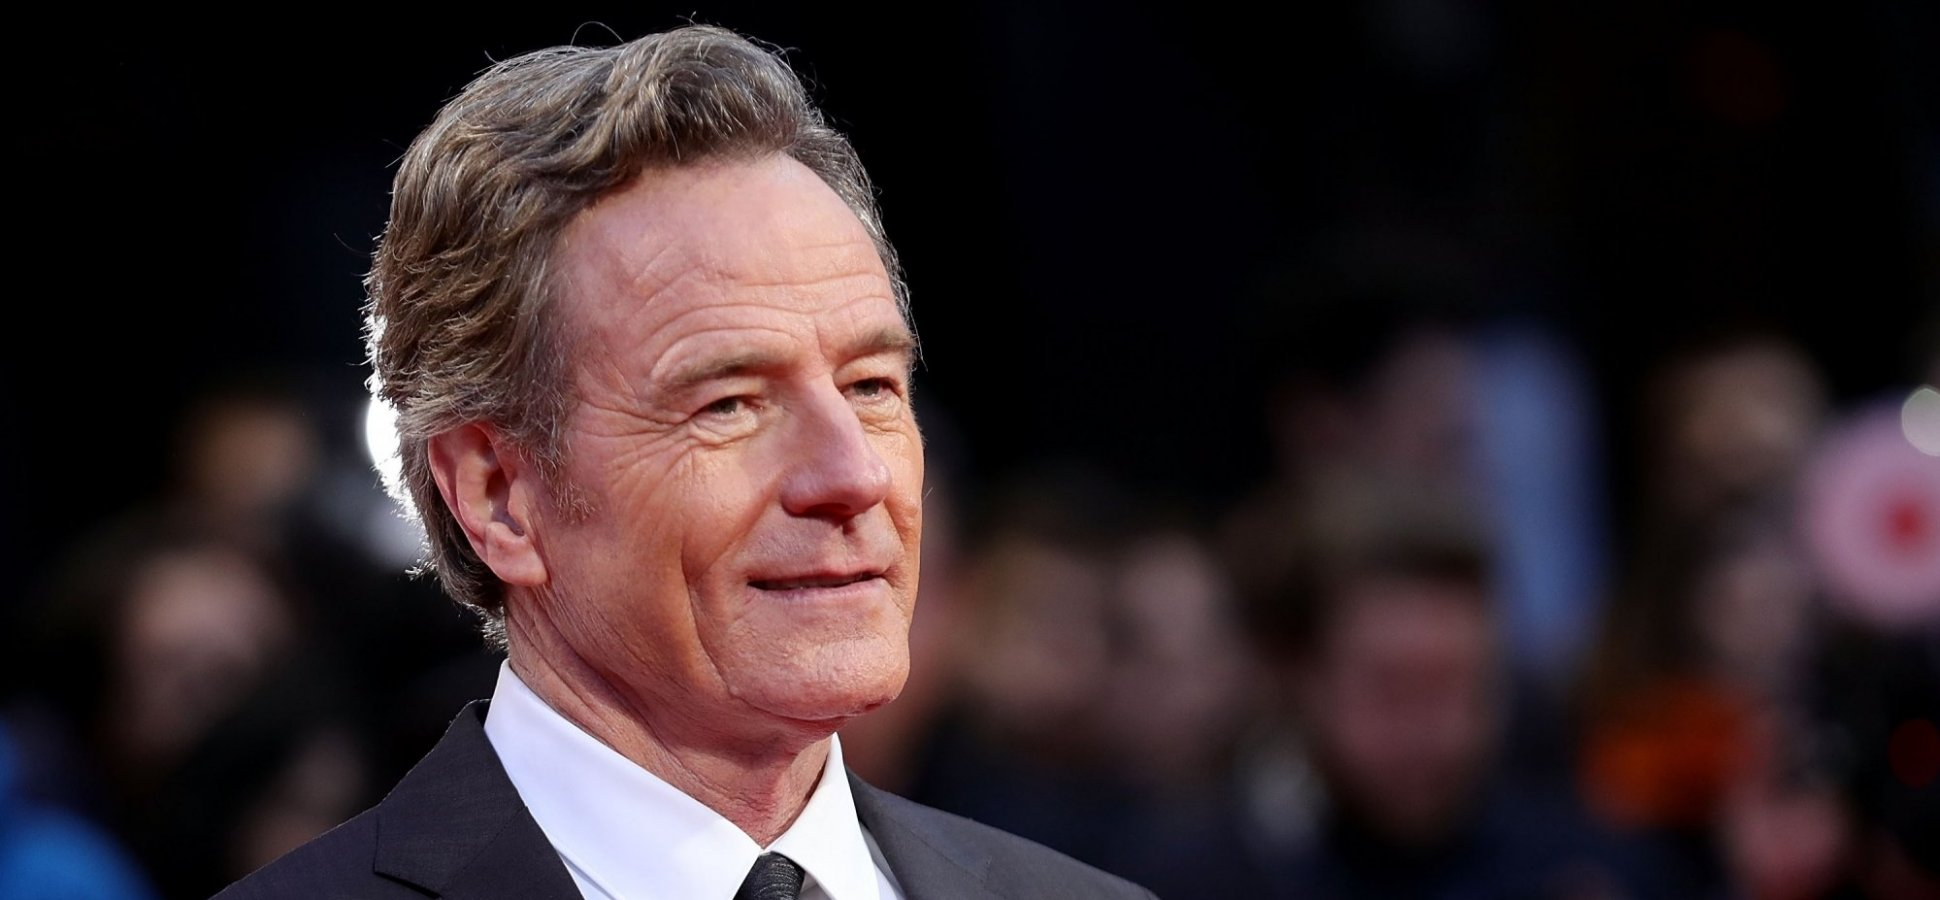 'Breaking Bad's' Bryan Cranston Finally Achieved Success When He Adopted This Powerful 6-Word Mindset